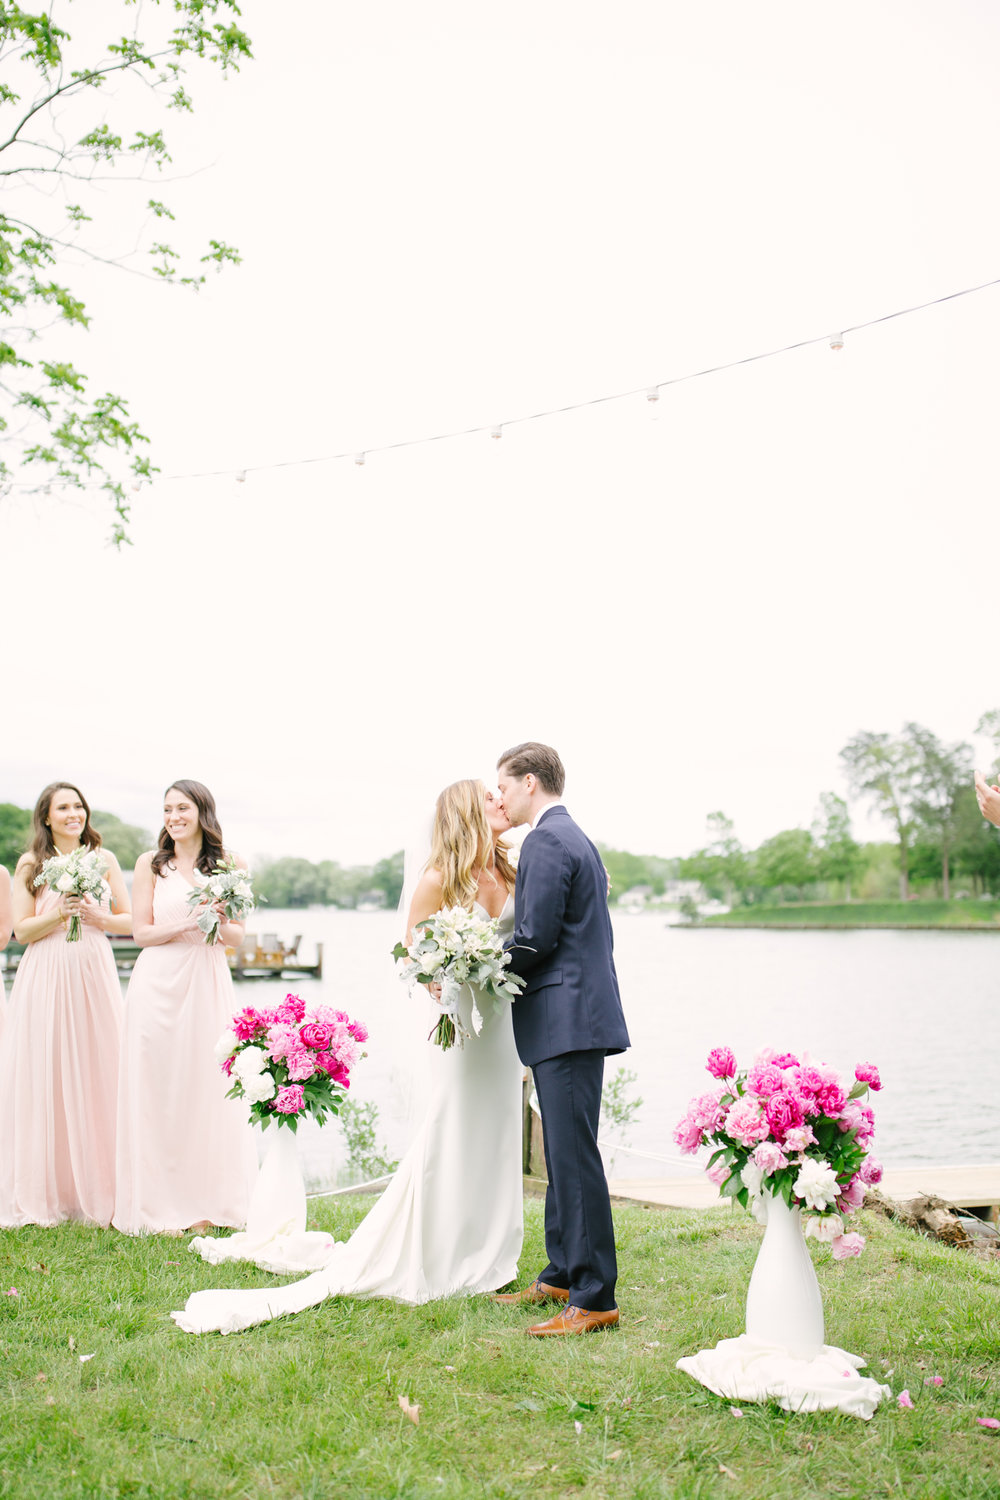 Maral Noori Photography | Easton Maryland Wedding | Pricing